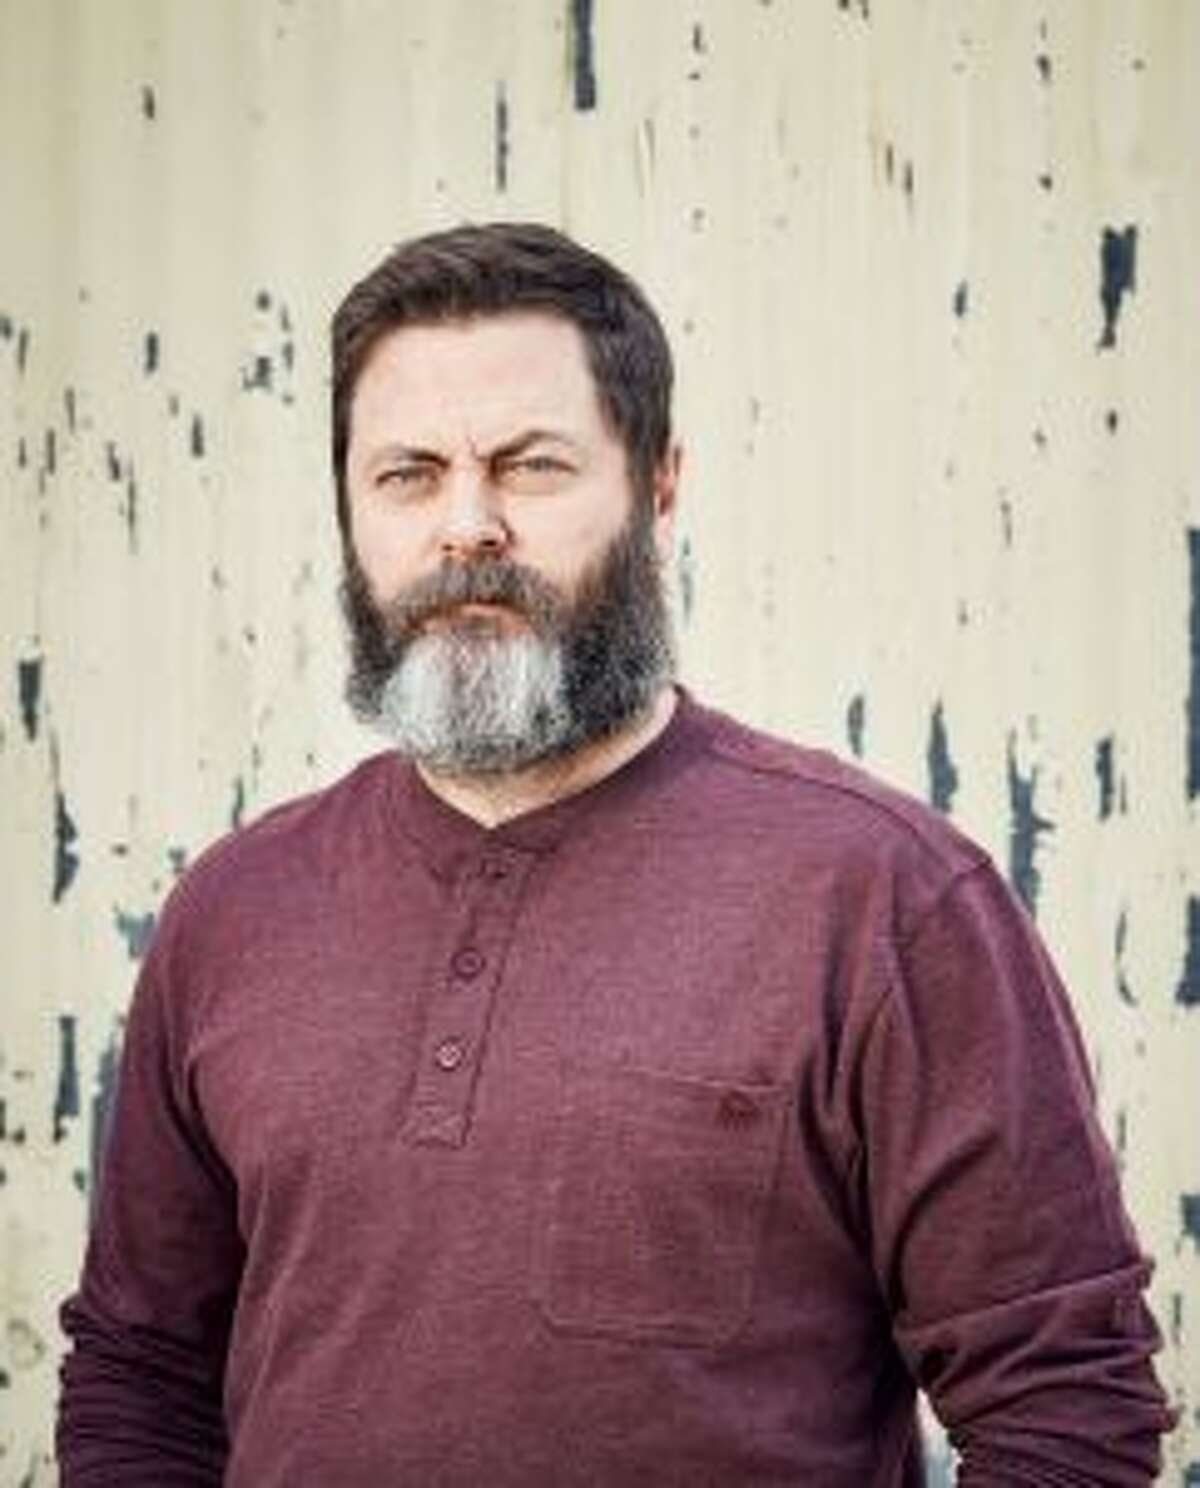 Actor, author and entertainer Nick Offerman will be the featured 2017 Homecoming comedian at 8 p.m. on Thursday, Sept. 28, in Ferris State University's Williams Auditorium. (Courtesy photo)